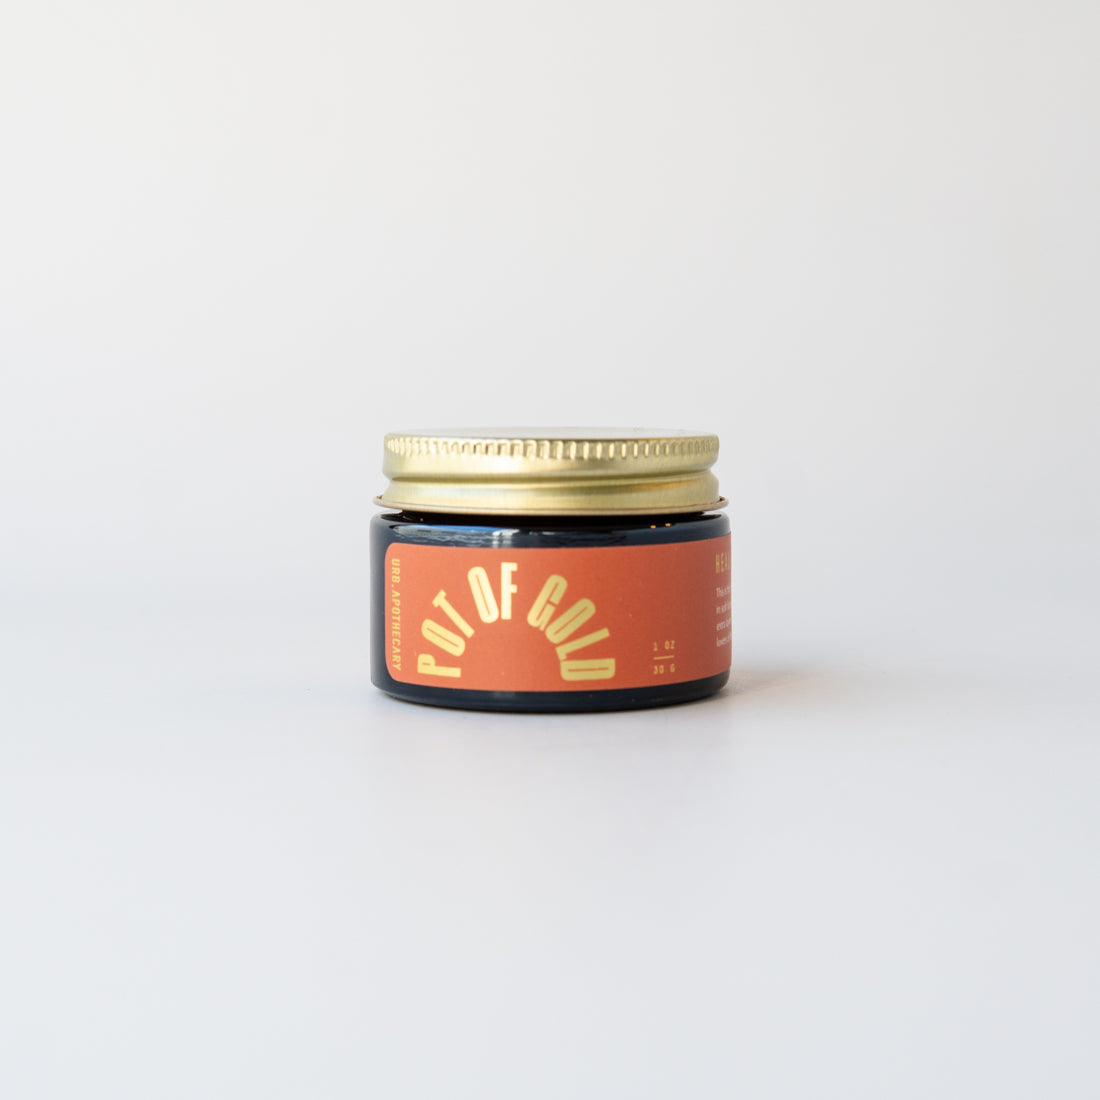 Pot of Gold Jar – Repair Balm